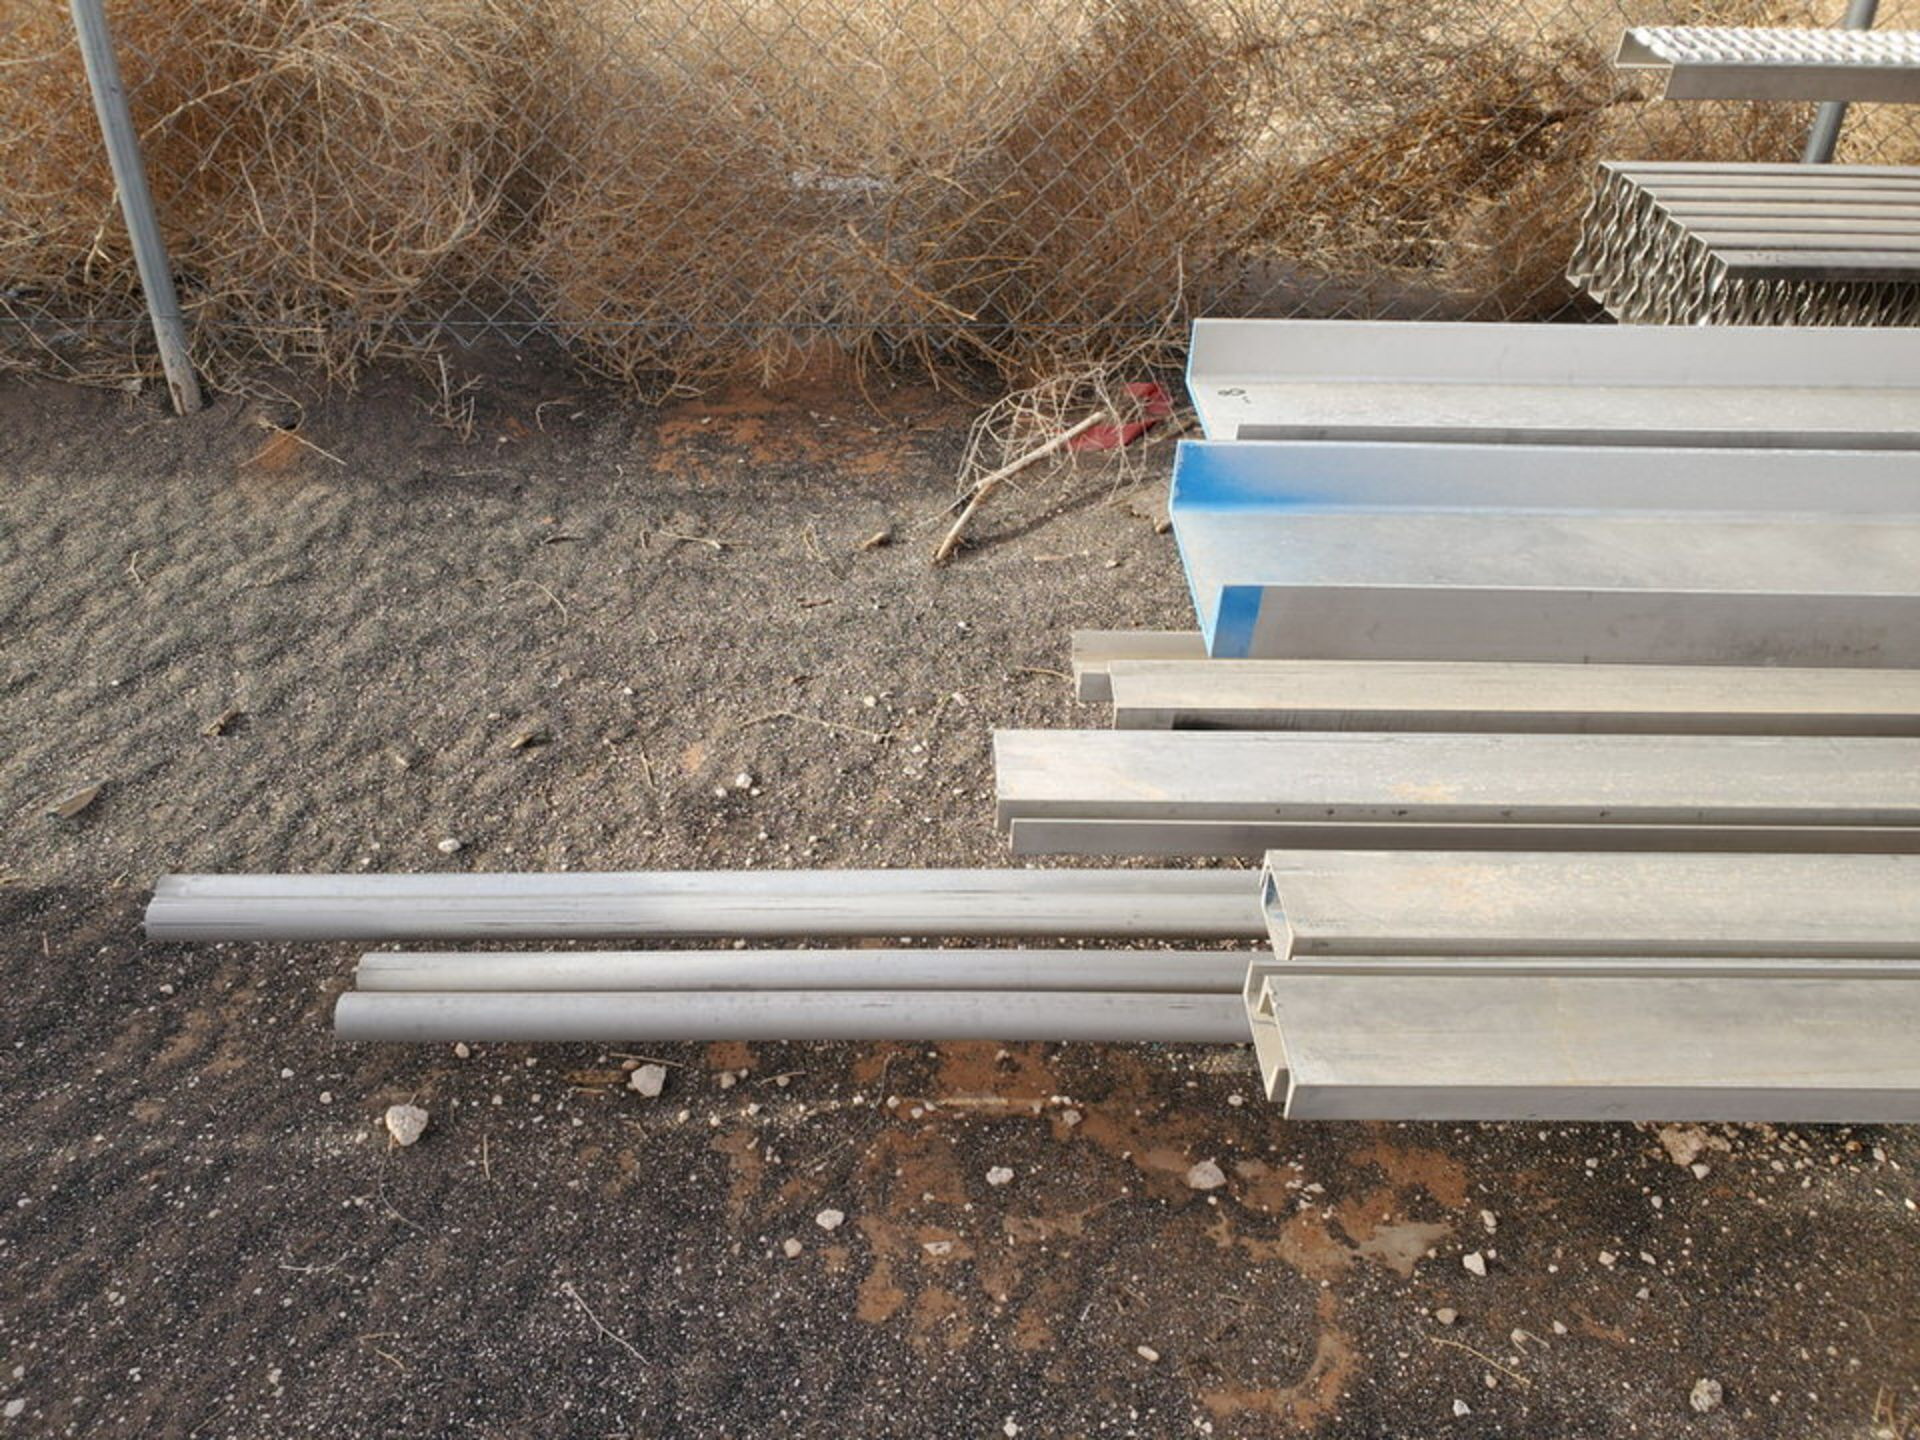 Assorted Matl. To Include But Limited To: S/S Channel, Pipe, Angle, Tubing, Rods, etc.(Rack - Image 4 of 19